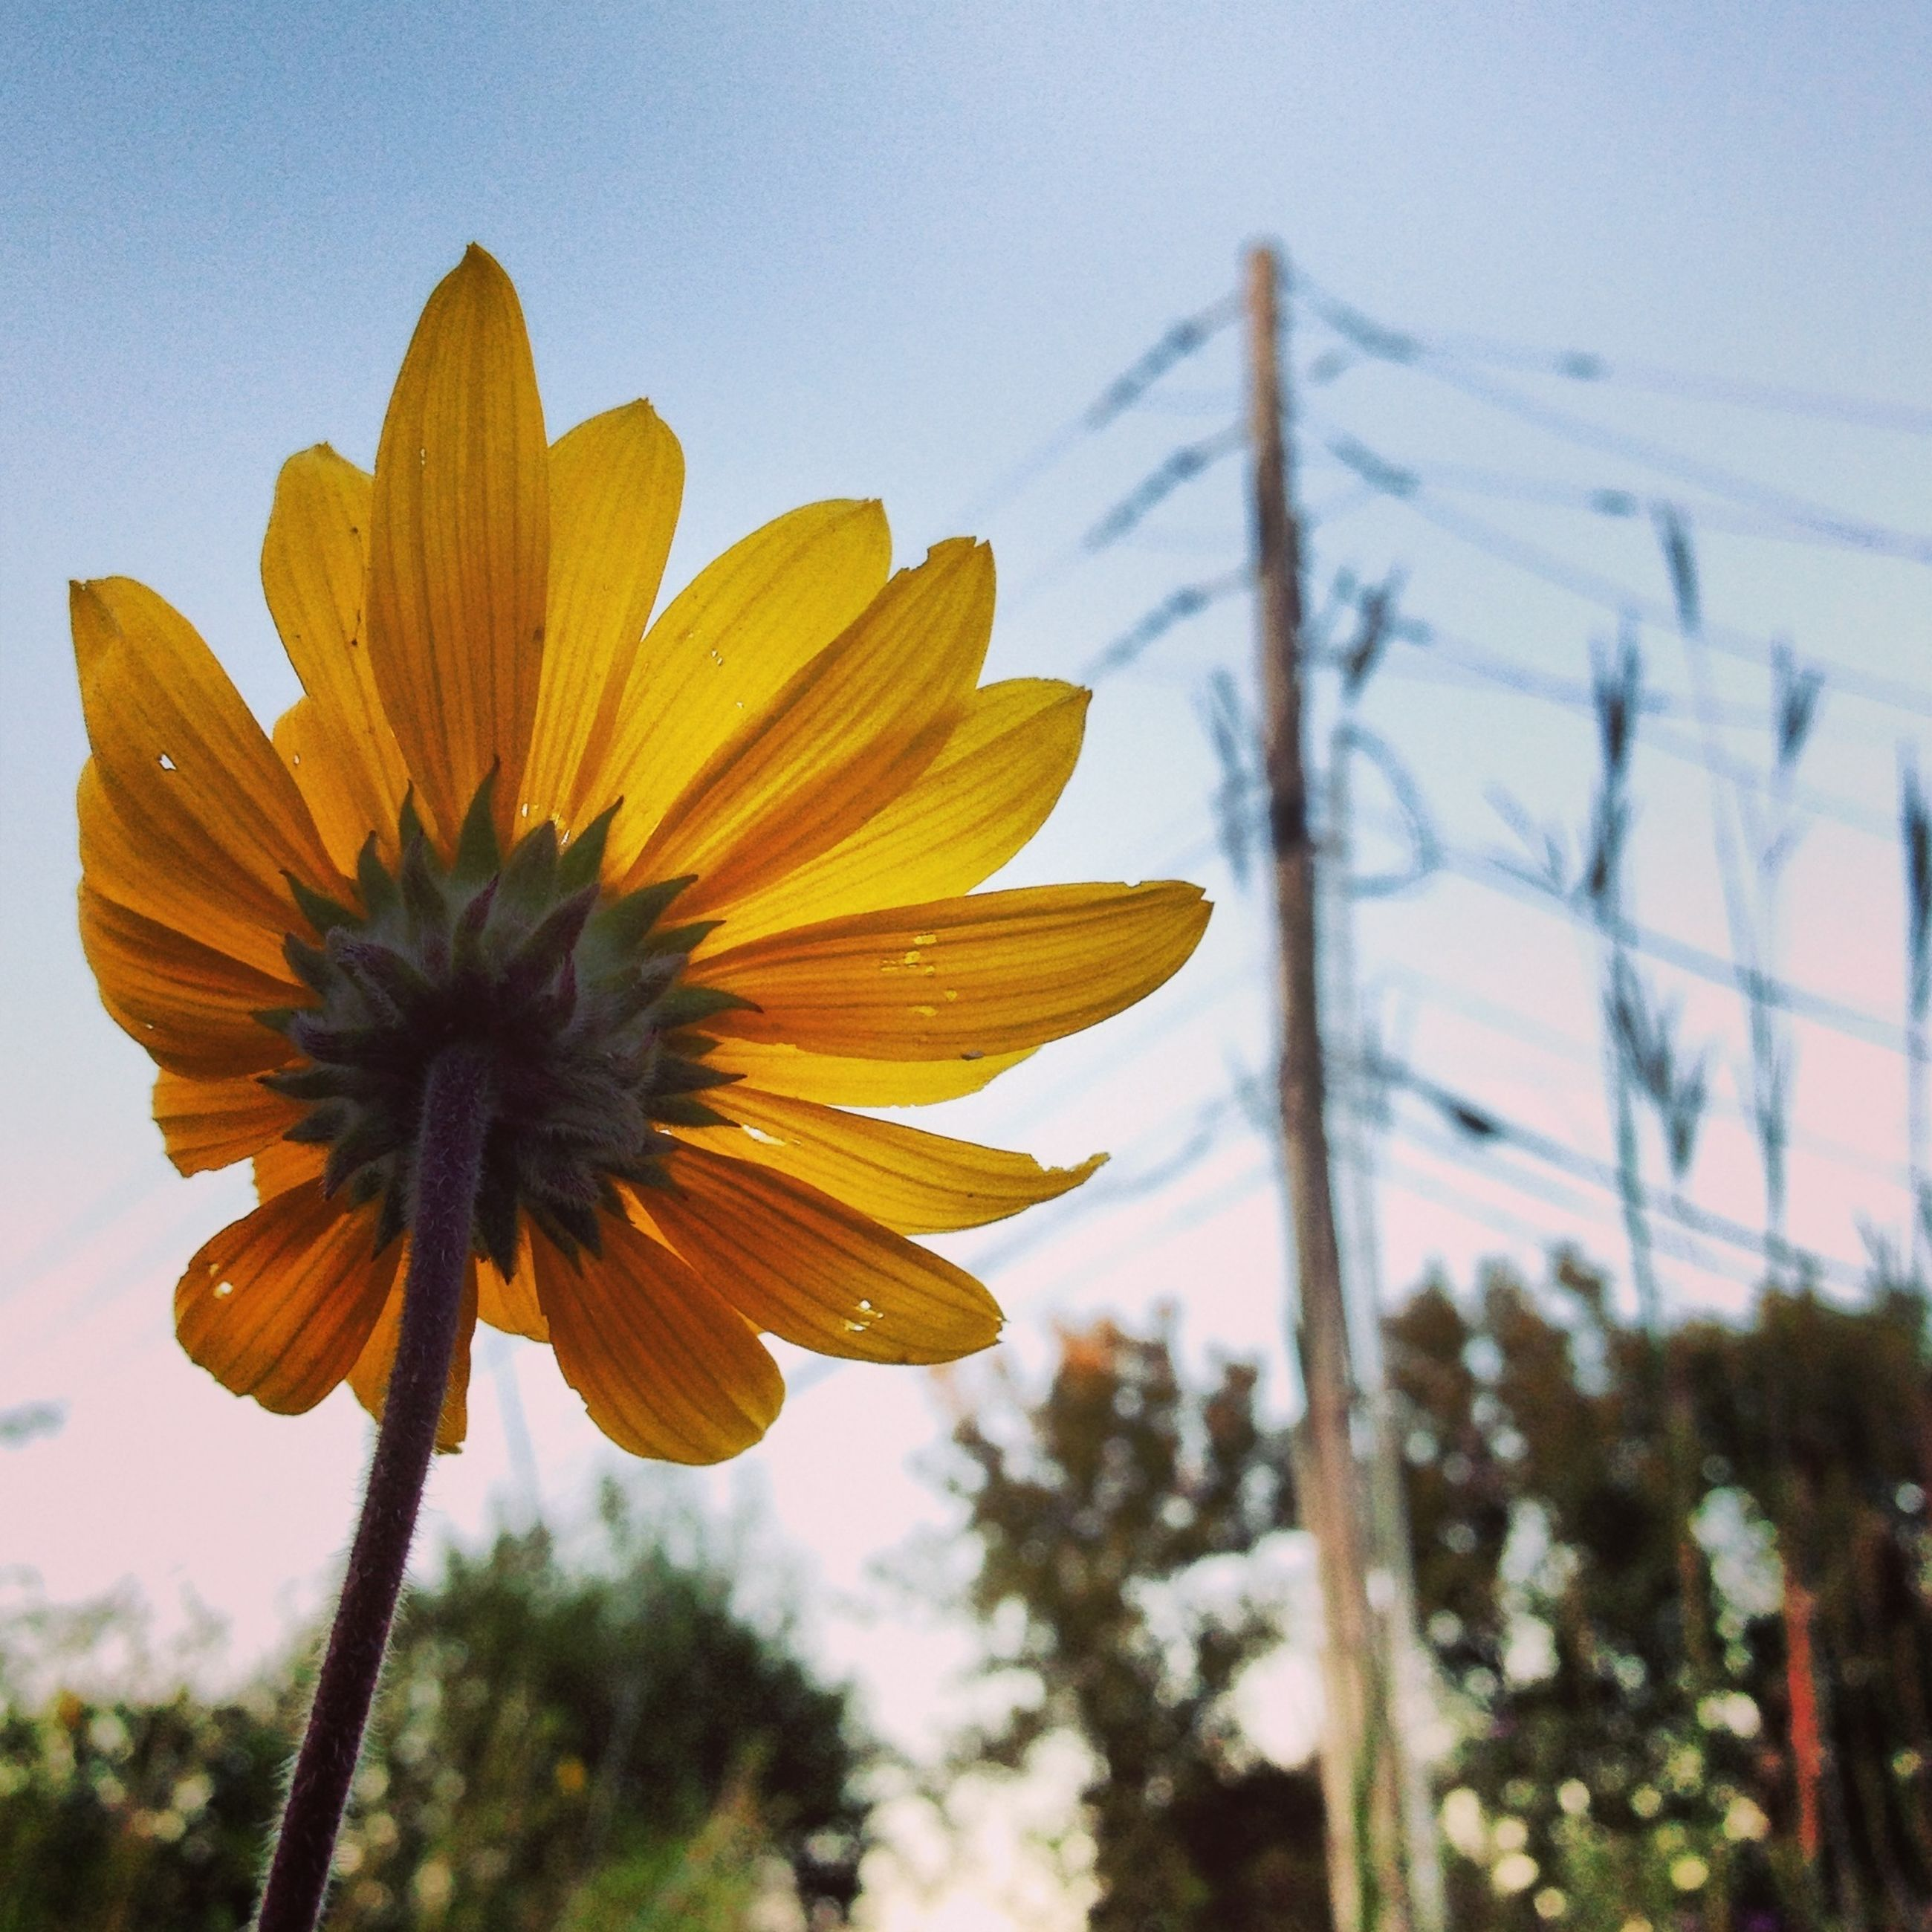 flower, fragility, freshness, petal, flower head, focus on foreground, yellow, close-up, growth, beauty in nature, plant, blooming, stem, nature, sky, single flower, pollen, in bloom, low angle view, outdoors